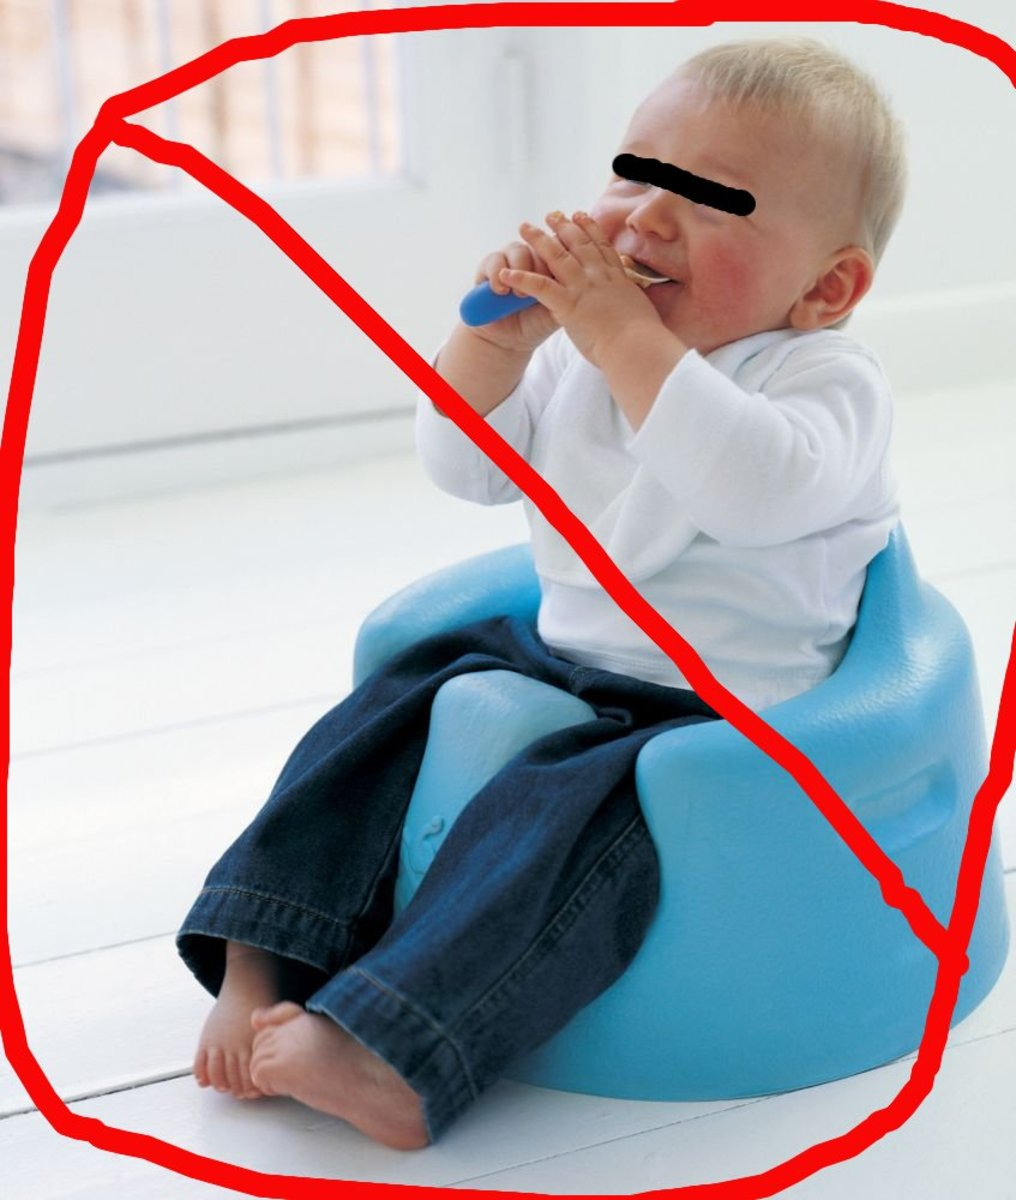 Bumbo Recall - Baby Chair Seat is NOT a Baby Sitter